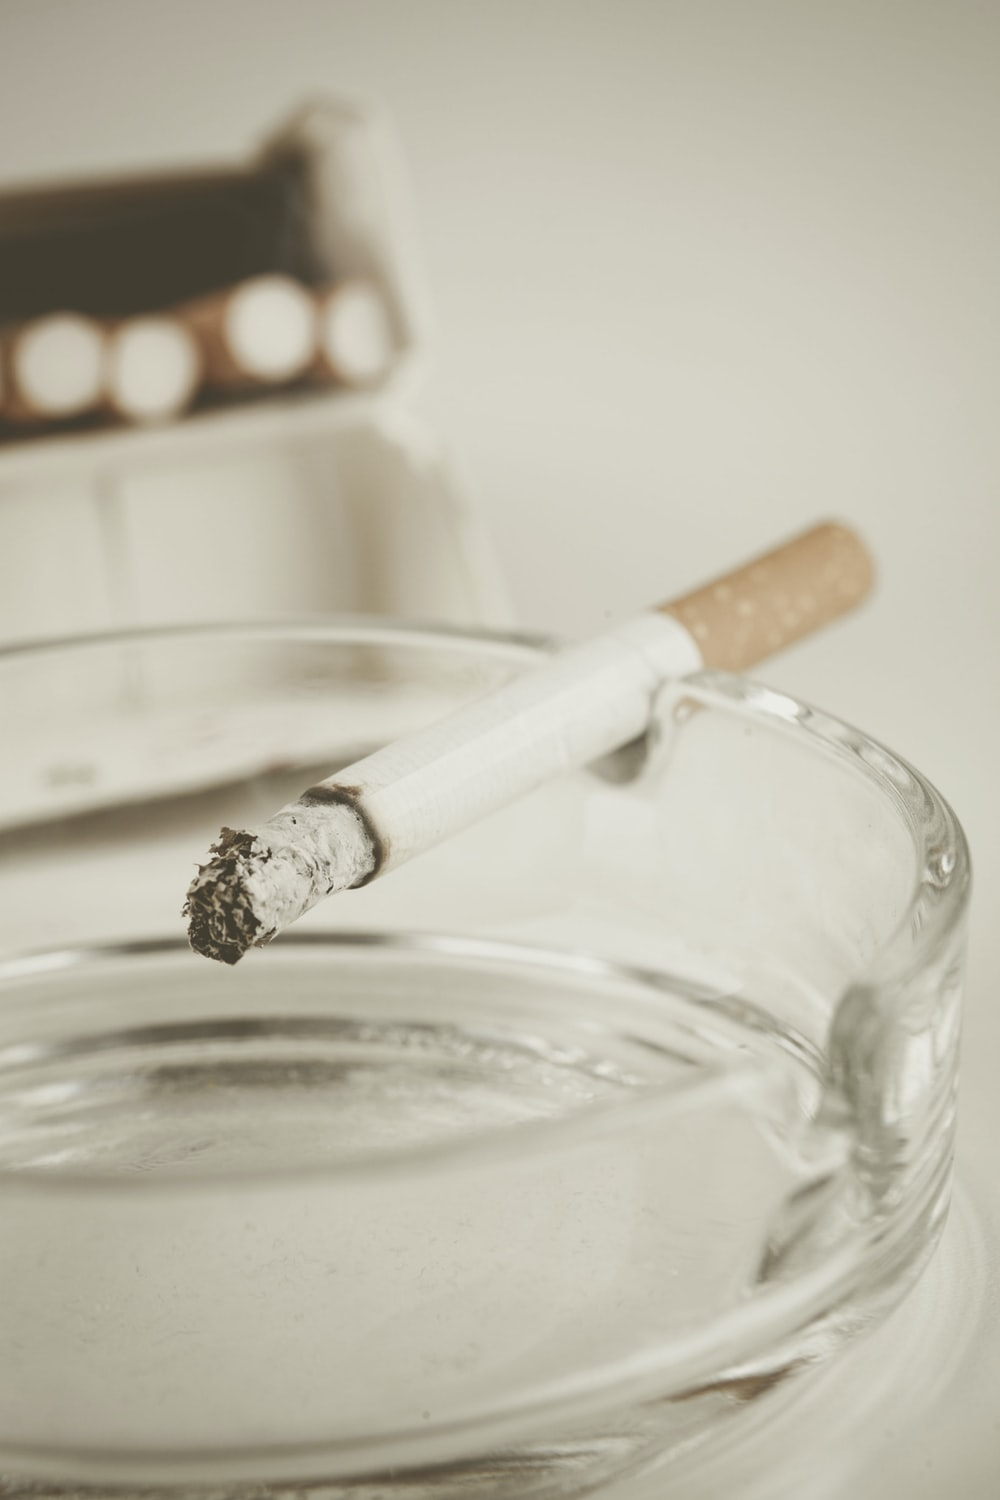 lighted cigarette stick on glass ashtray